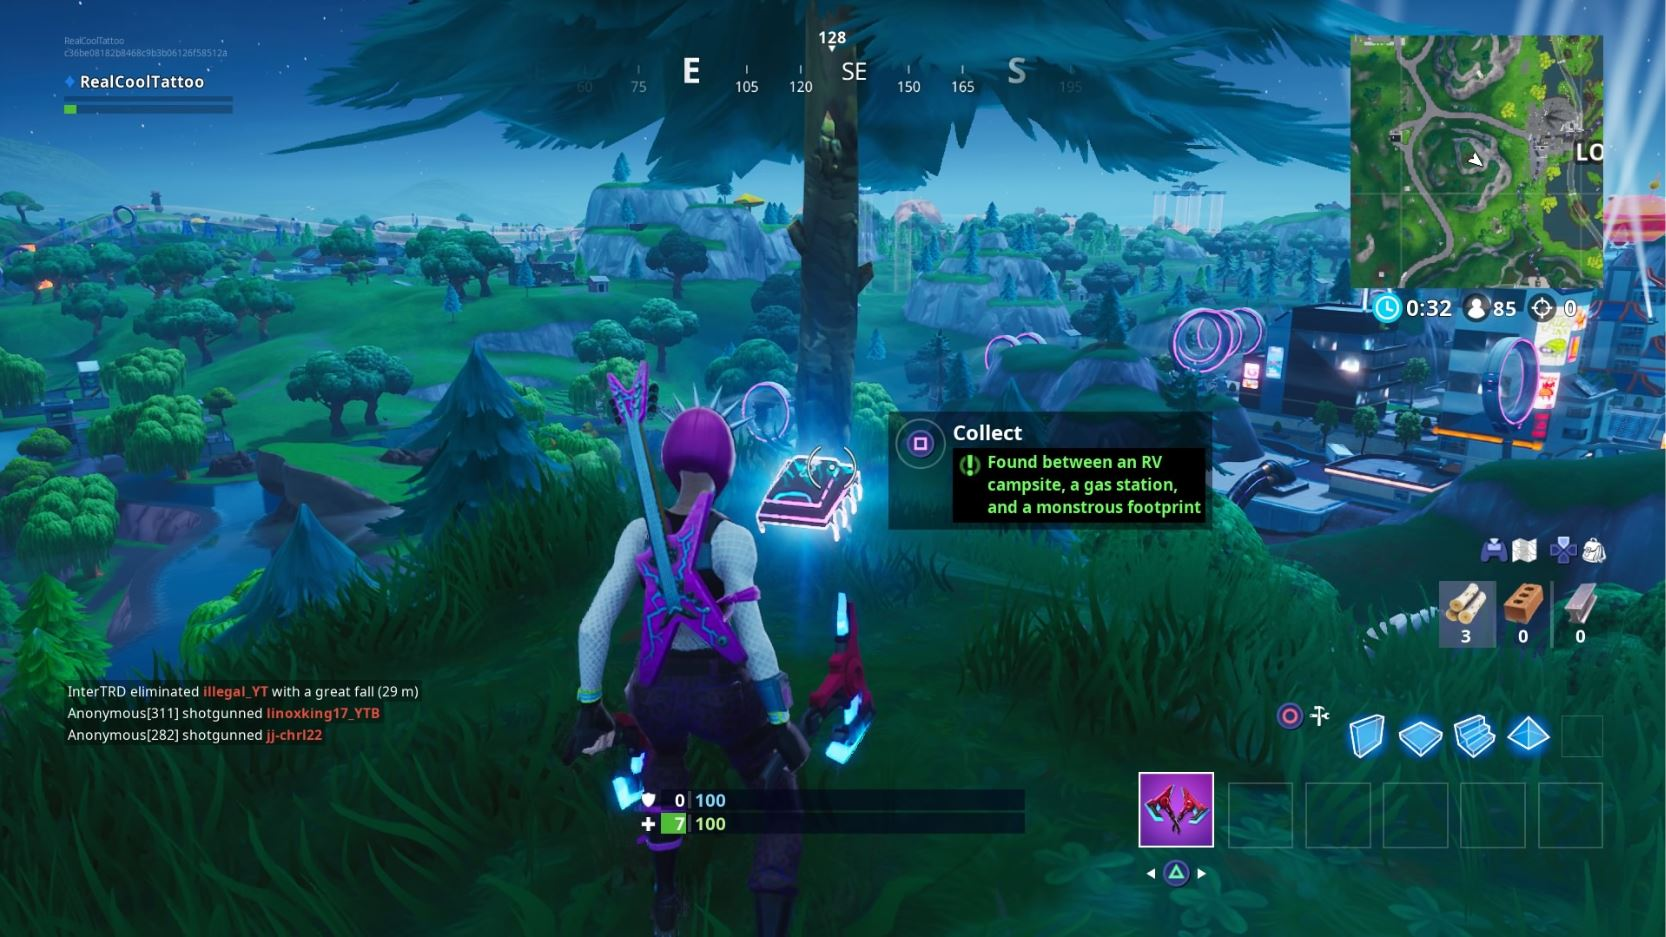 Fortbyte 23 Location: Between RV Campsite, Gas Station & Monstrous Footprint